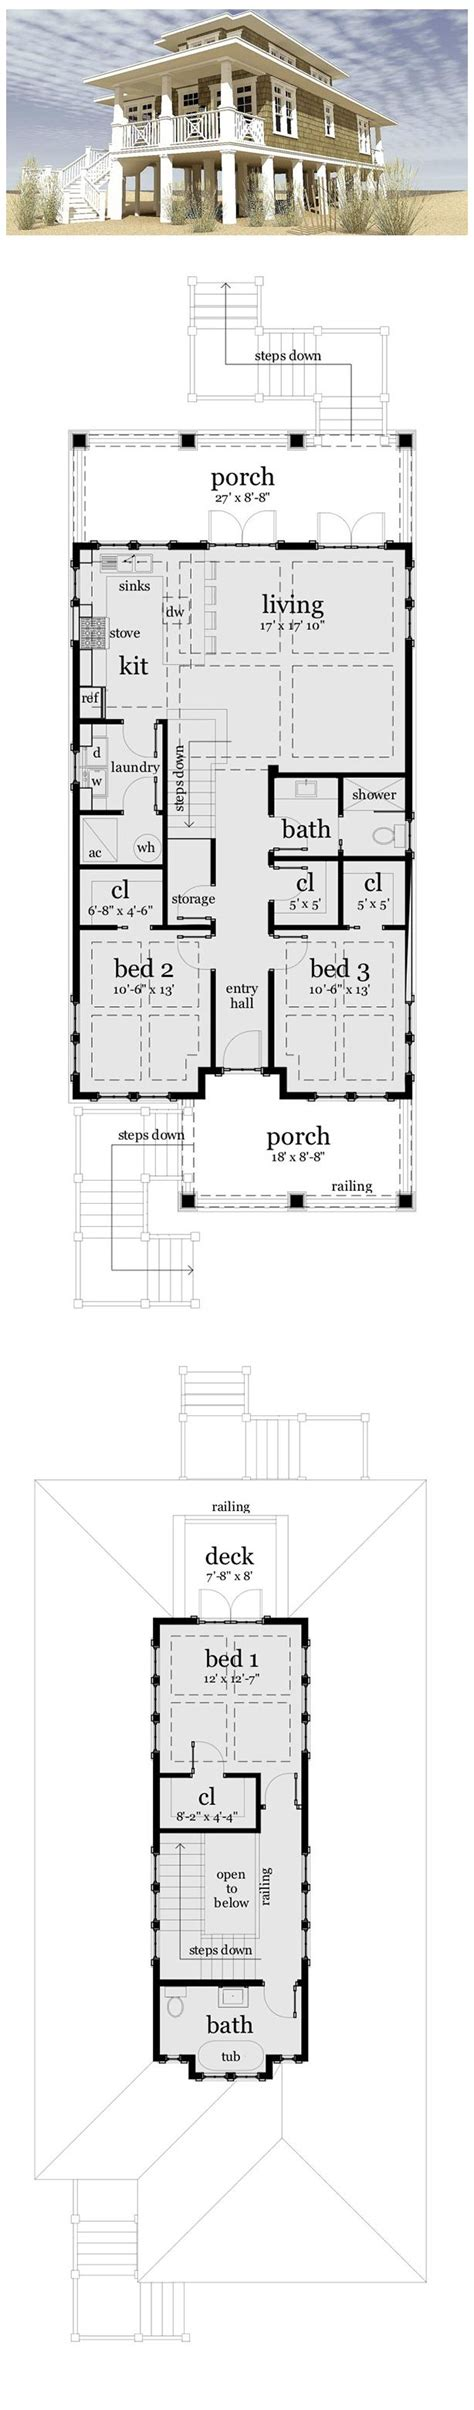 beach house plans free best beach house plans ideas pinterest lake plan